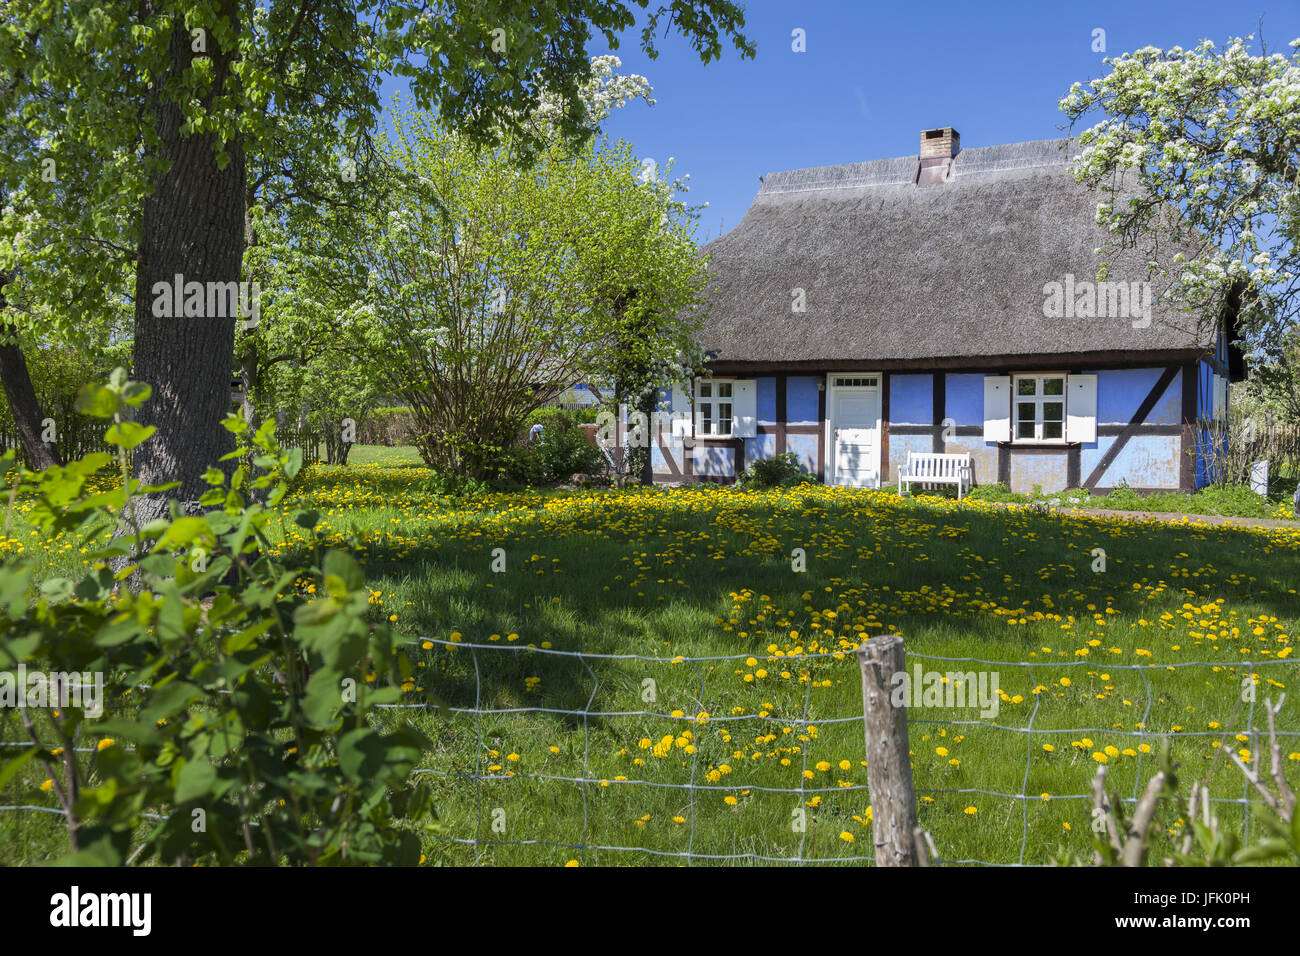 house on the island of usedom, germany Stock Photo